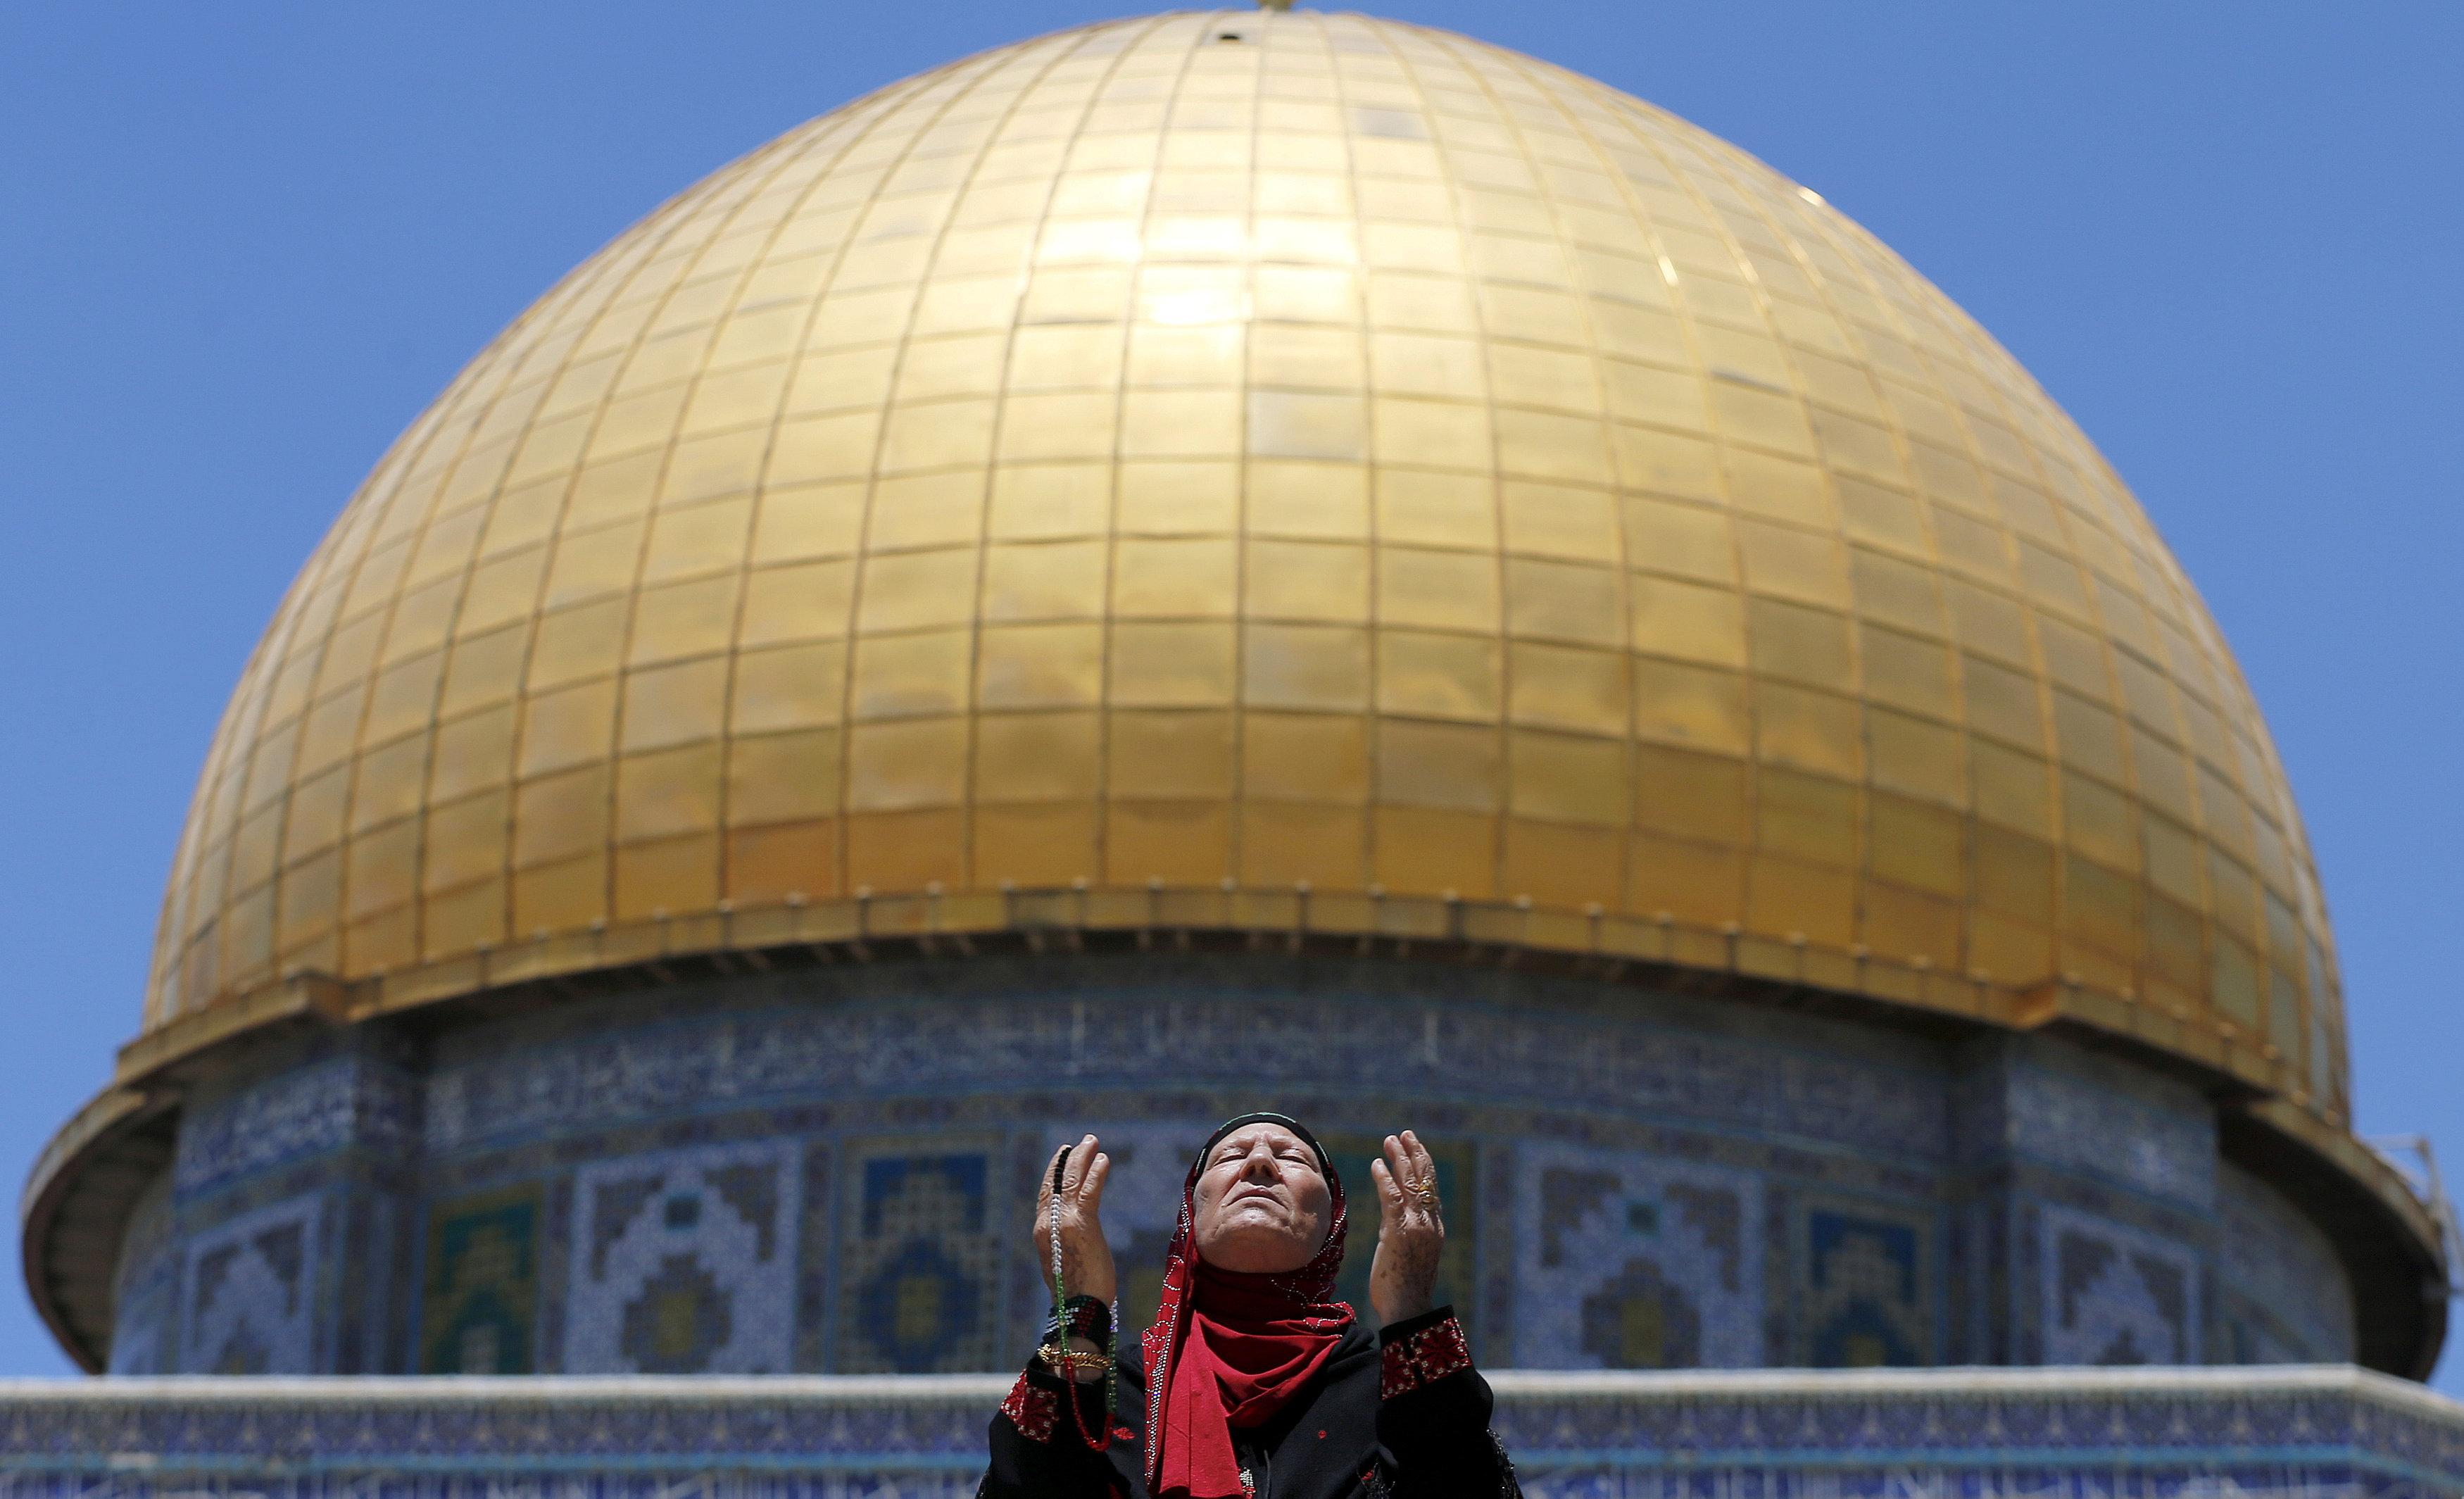 A Palestinian woman prays in front of the Dome of the Rock on the first Friday of the holy month of Ramadan at the compound known to Muslims as the Noble Sanctuary and to Jews as Temple Mount, in Jerusalem's Old City June 19, 2015. Ammar Awad